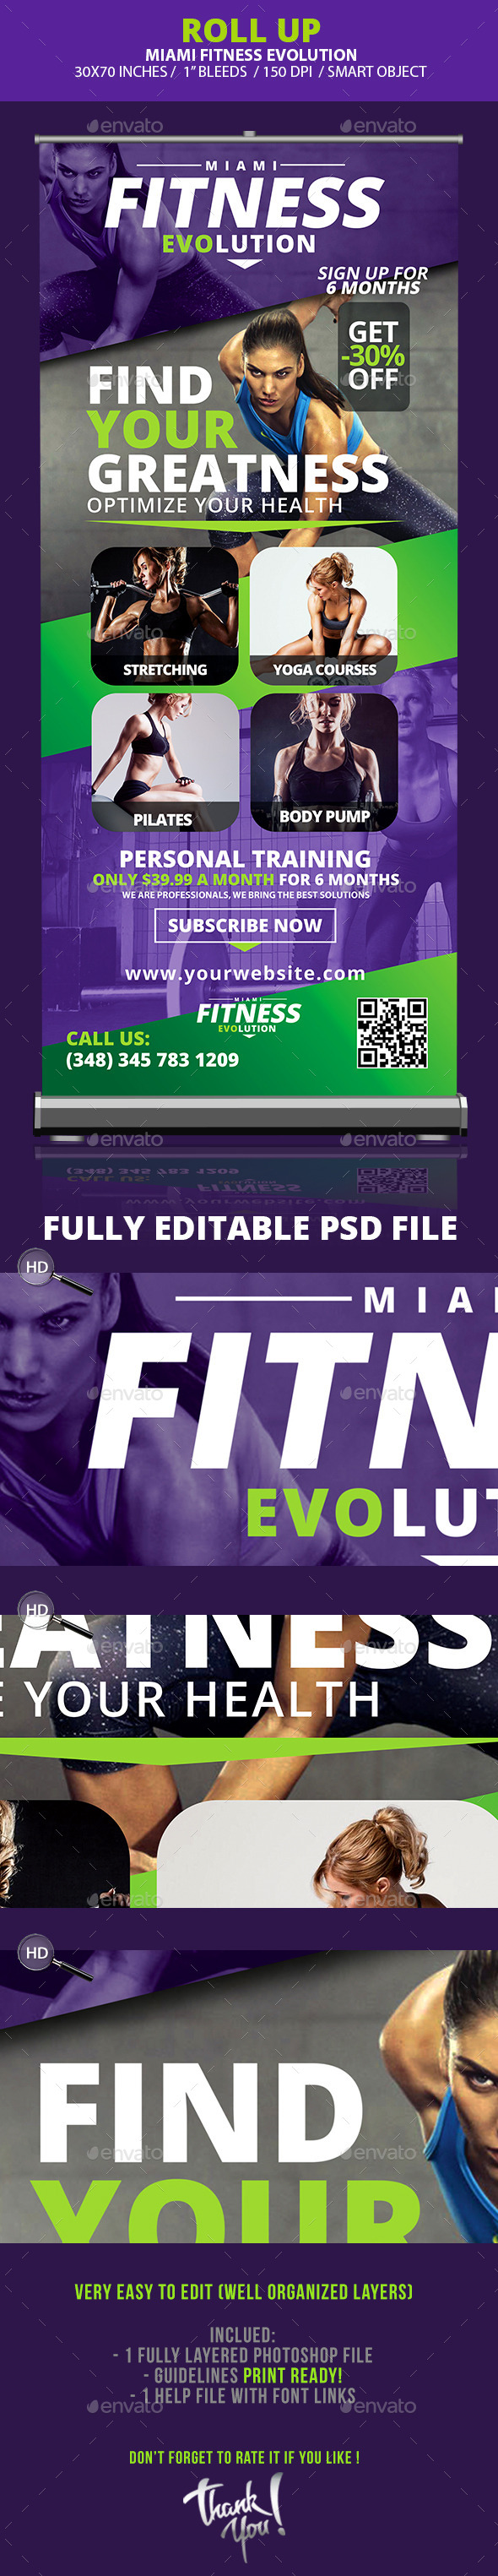 Fitness Evolution Roll-up Banners  - Signage Print Templates